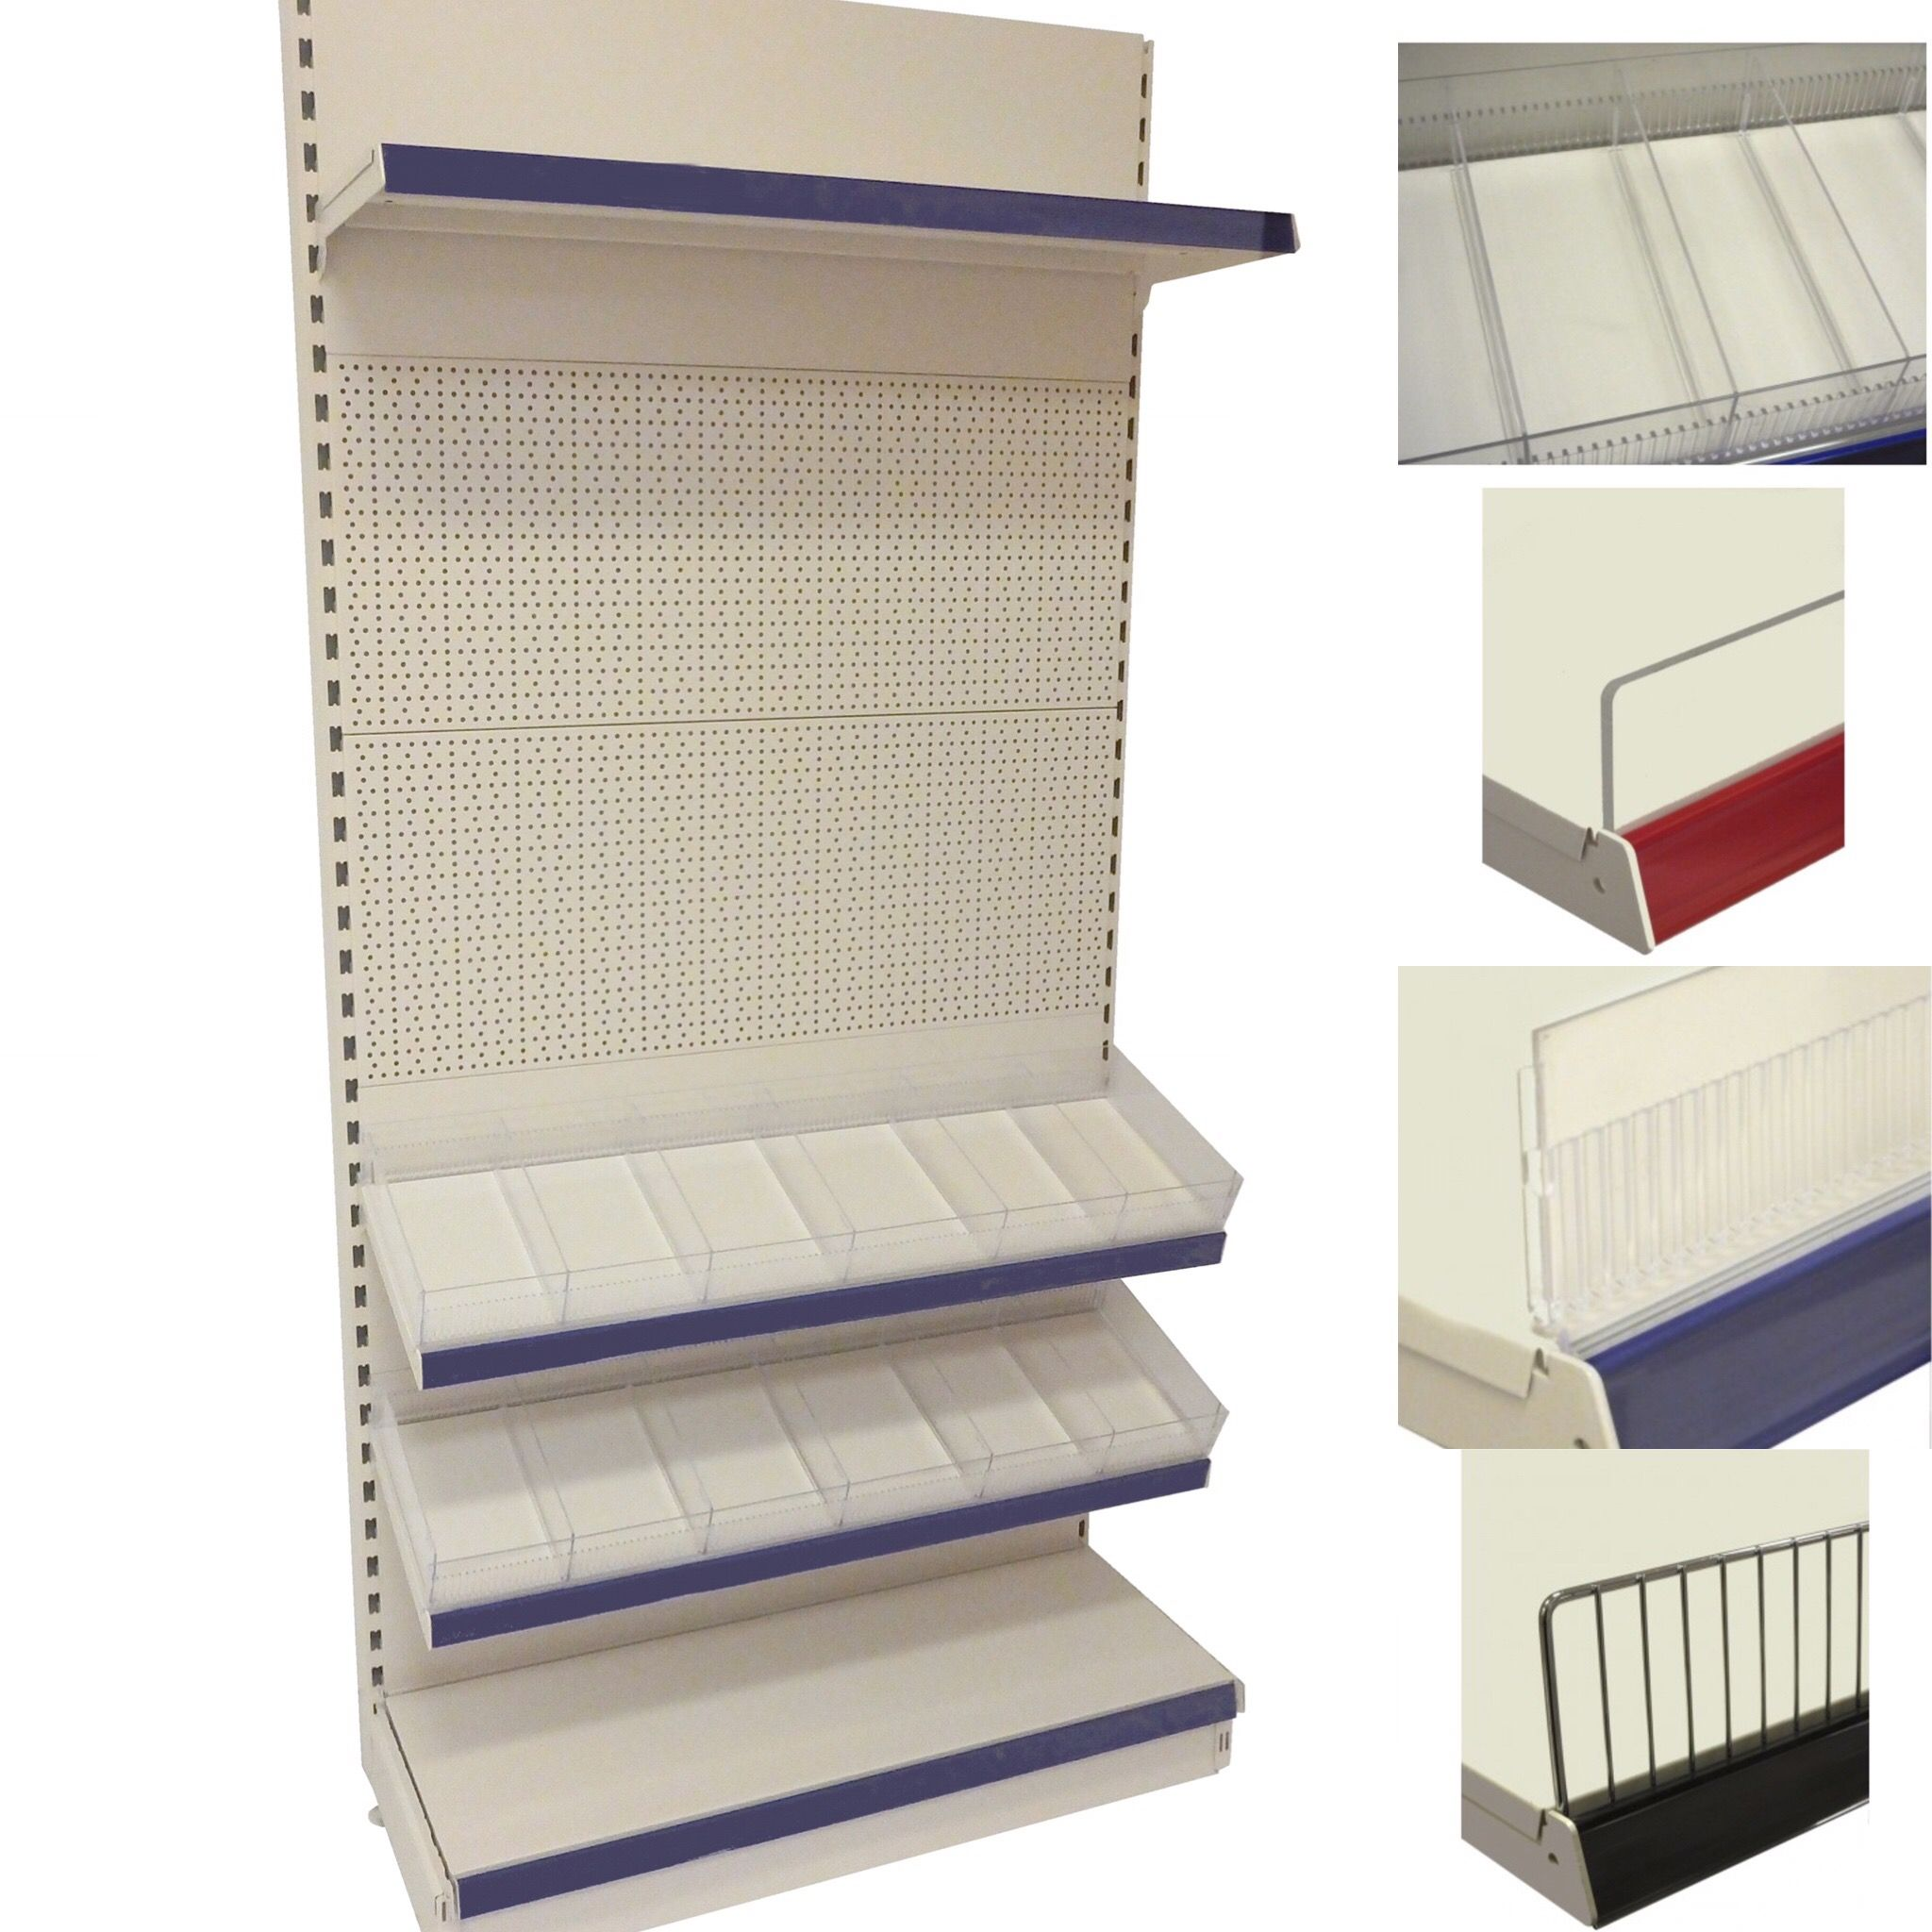 Freestanding Wall Shelving Unit With Easy Clip On Shelf Risers